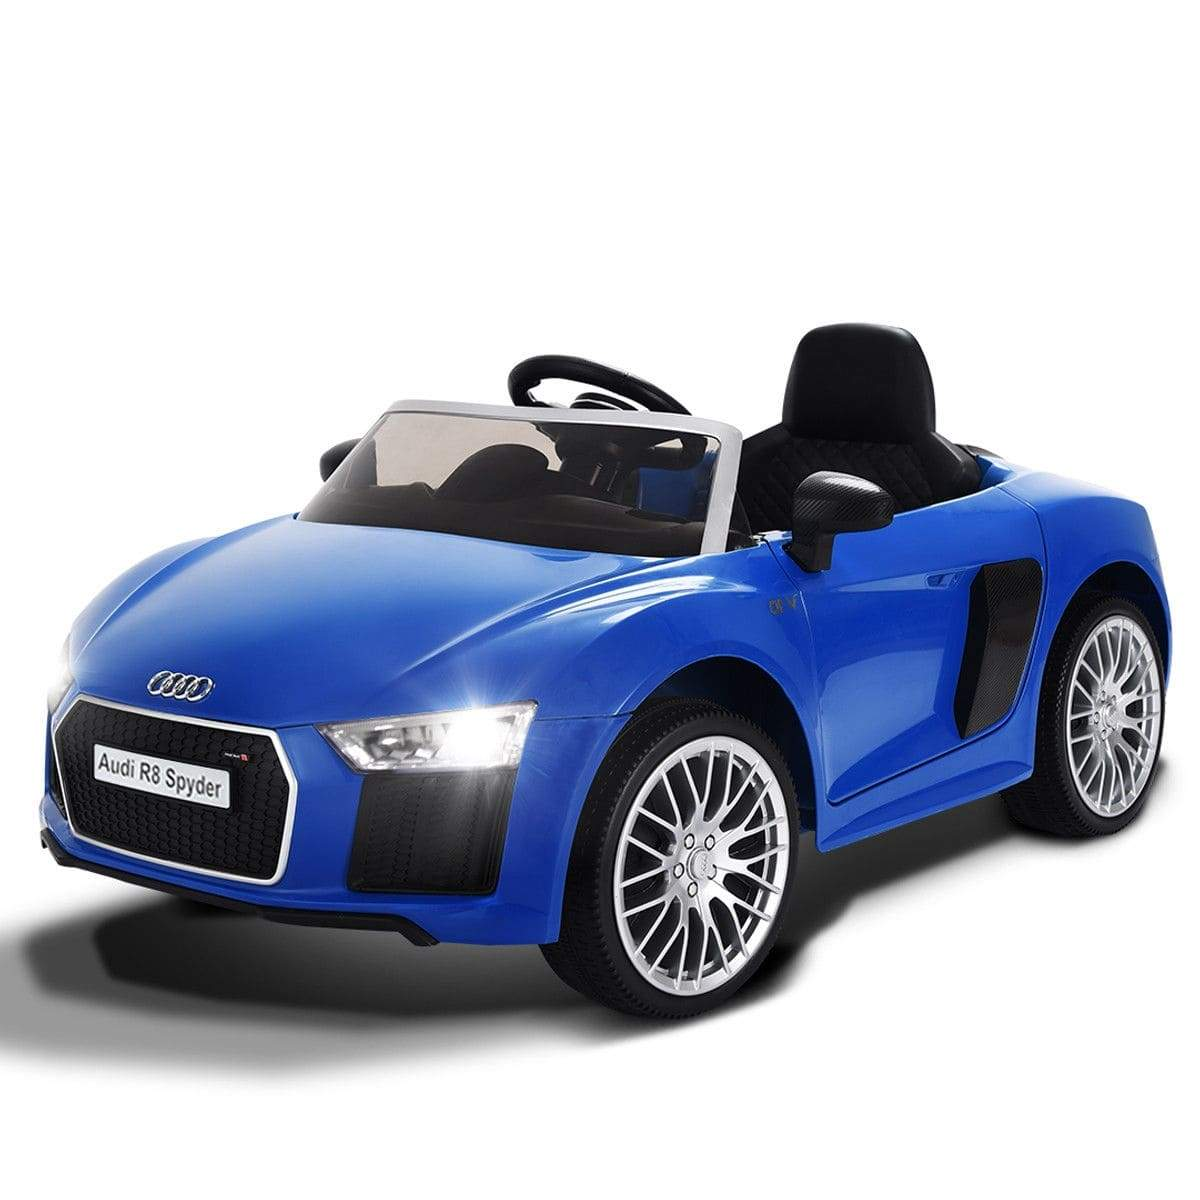 Licensed Audi R8 Spyder 12V Electric Kids Ride-On Car with Remote Control - FREE SHIPPING Cars & SUVs Costway Blue